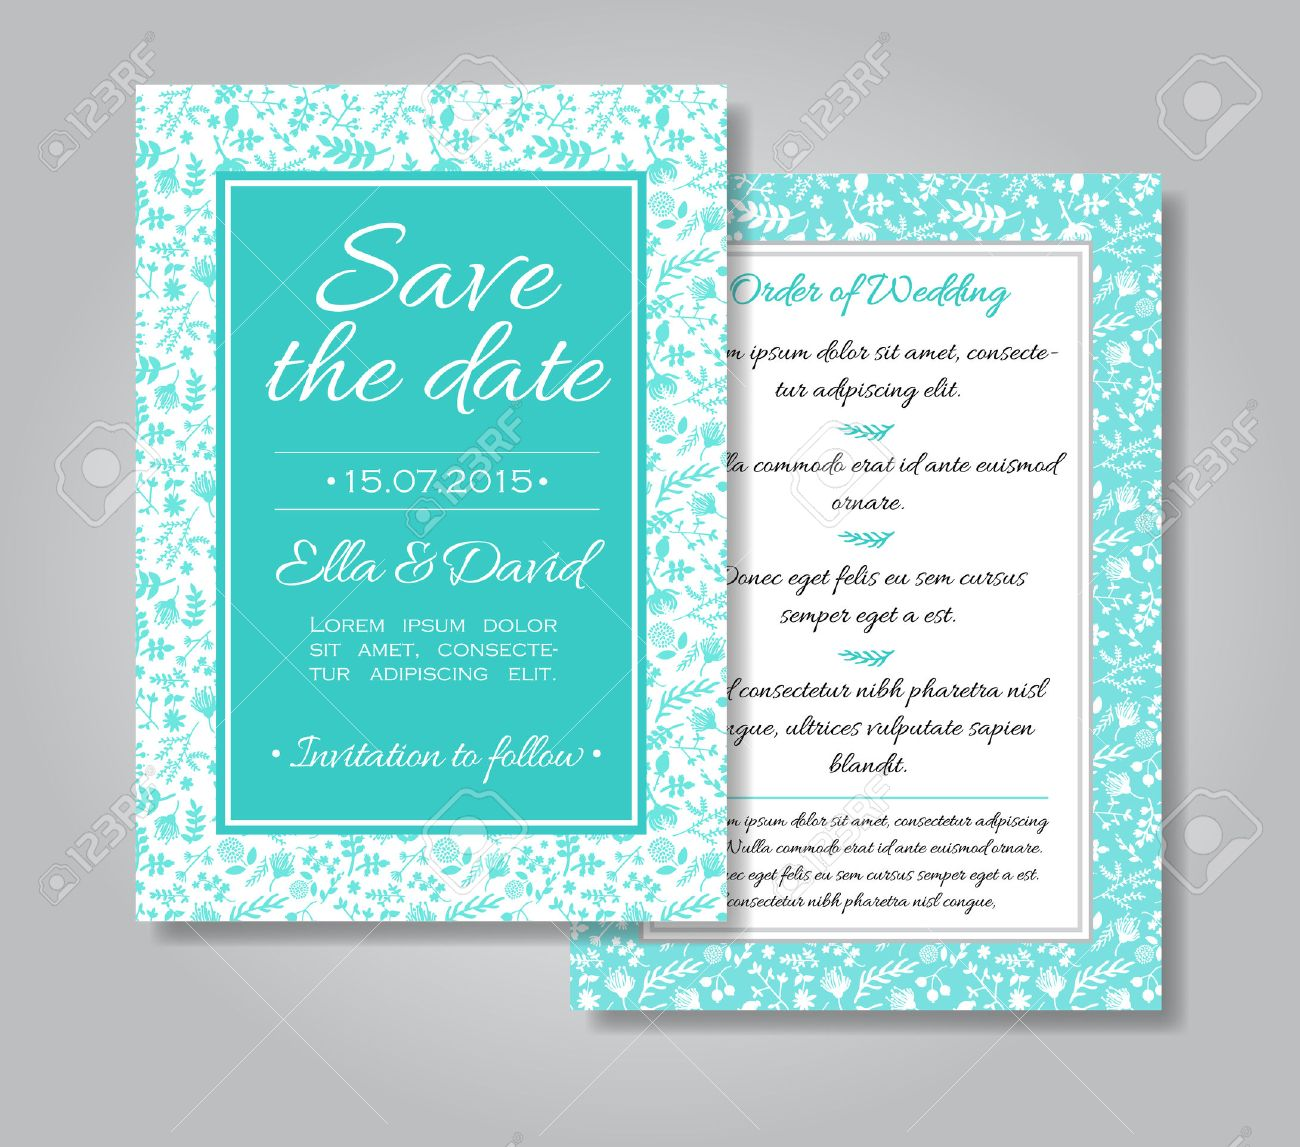 Wedding Invitation Card With Floral Design As Background In Tiffany